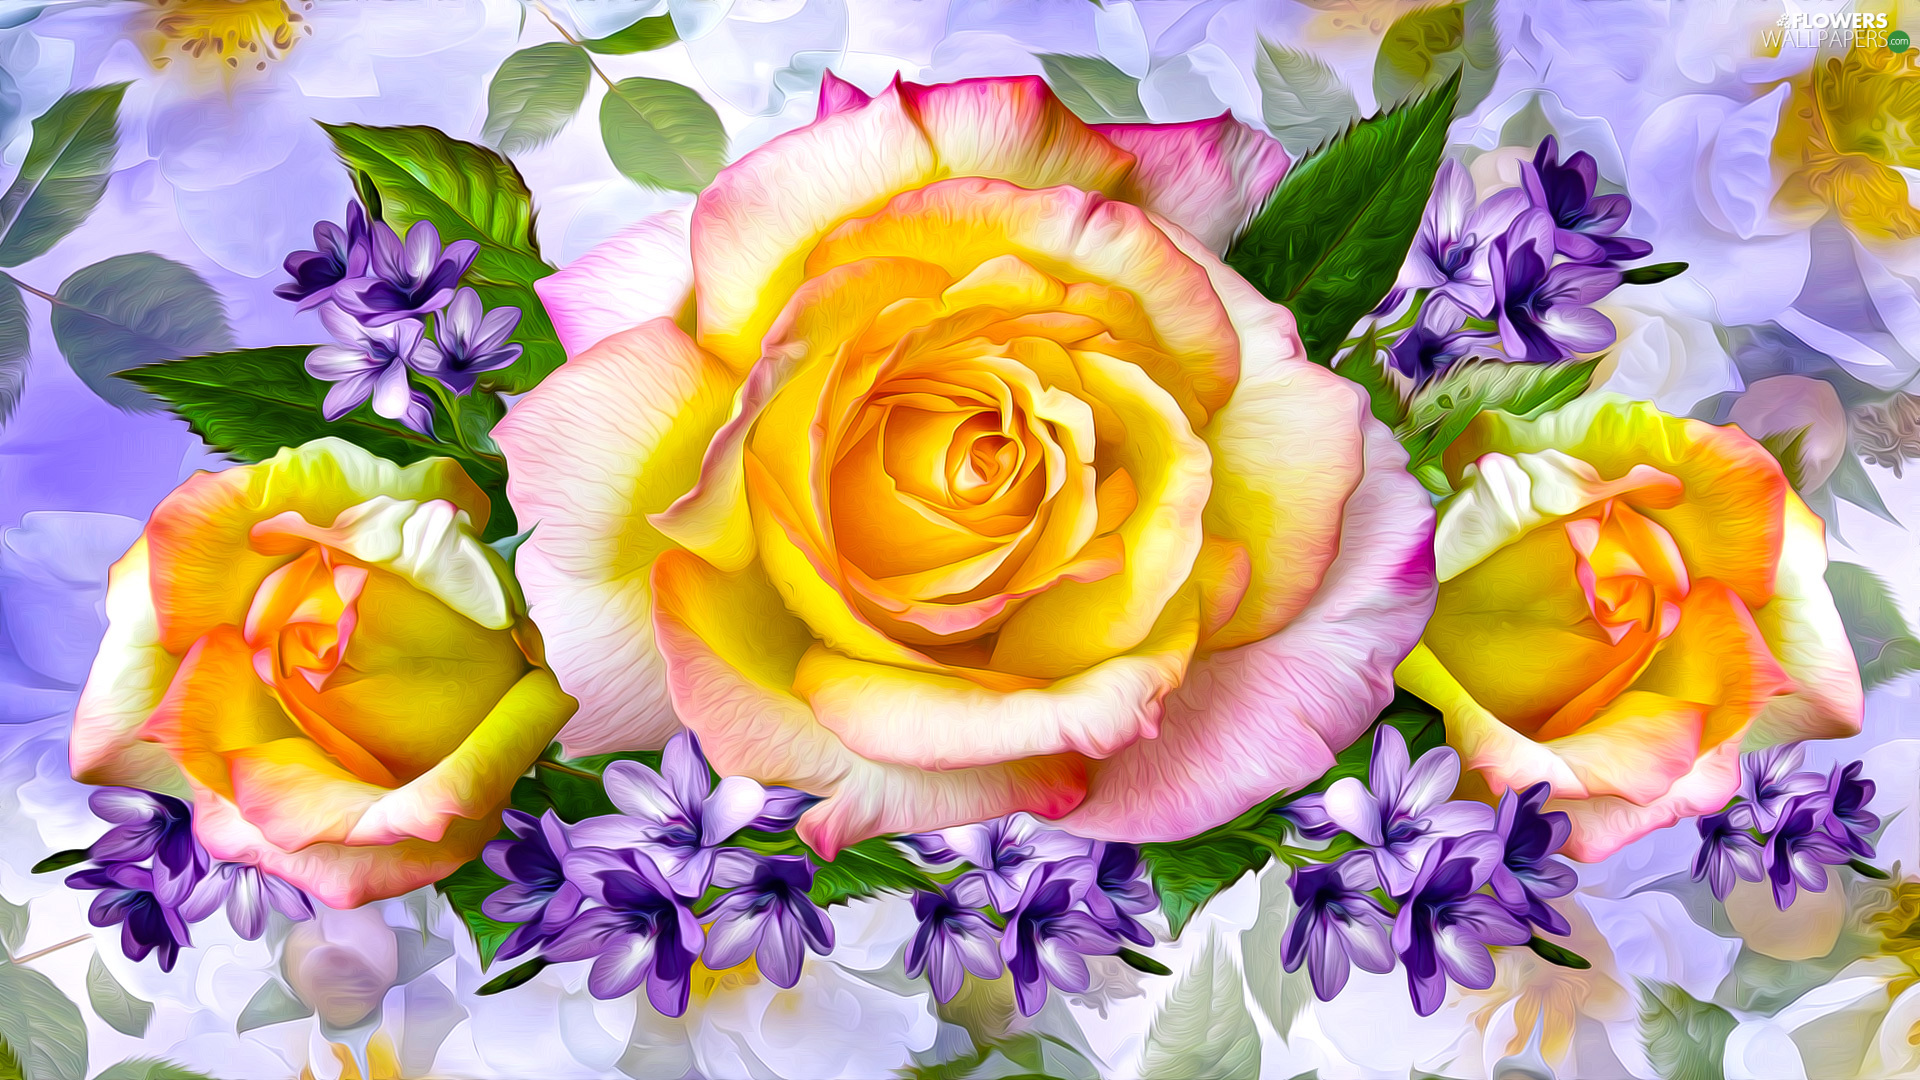 roses, Flowers, Flowers, graphics, purple, Yellow